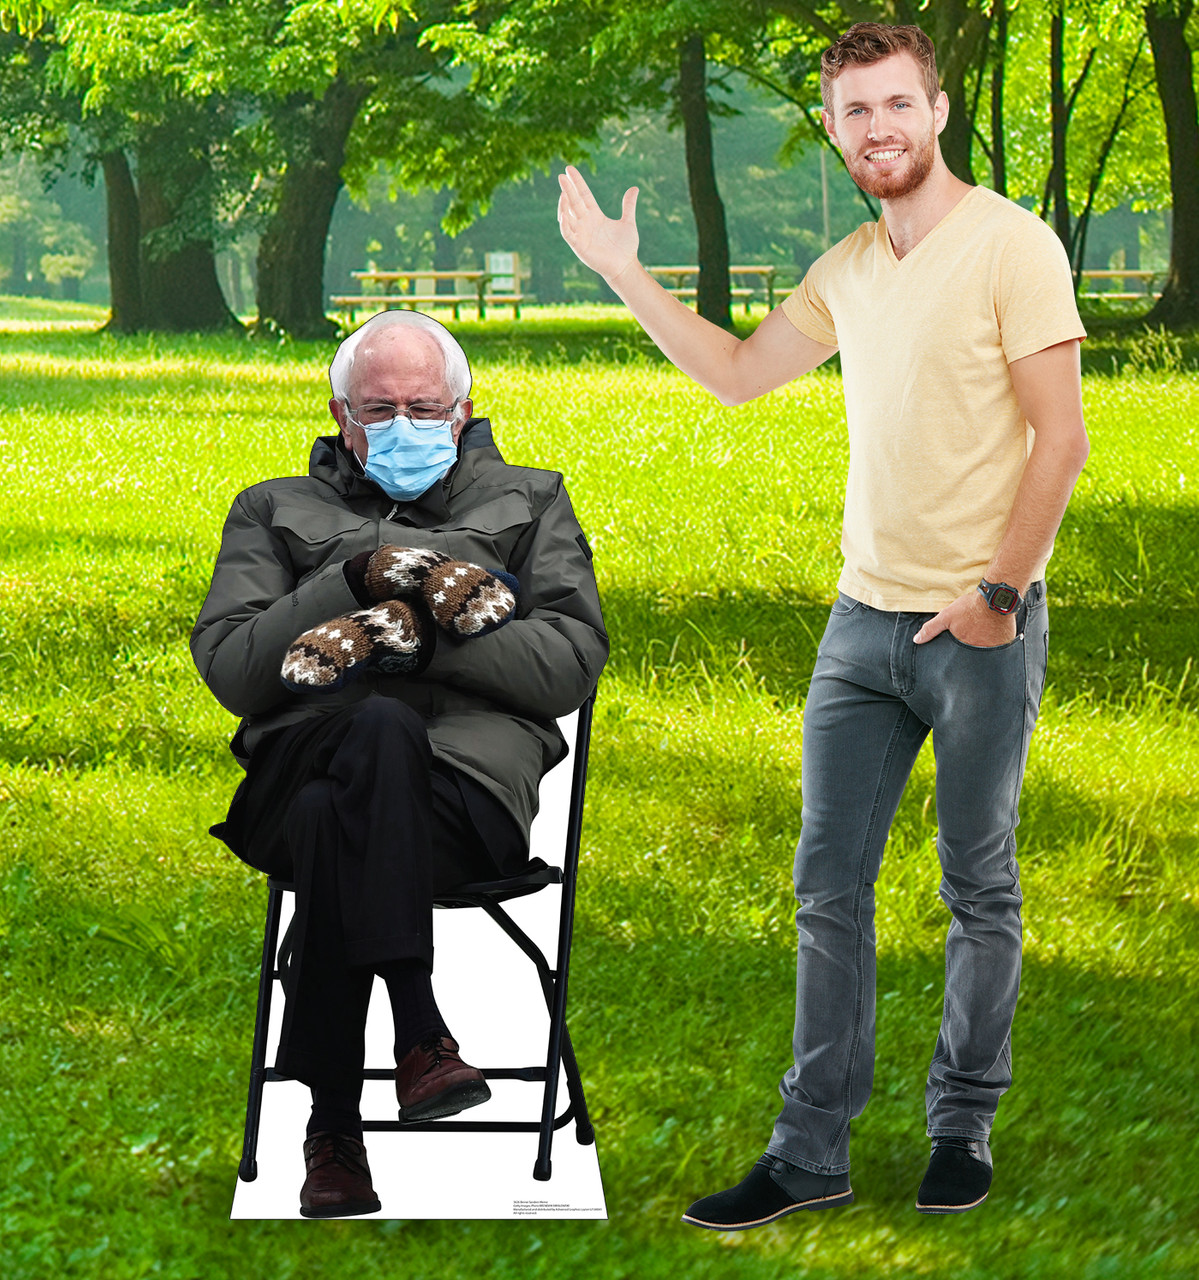 Life-size coroplast outdoor standee of Bernie Sanders meme from 2020 election with model.